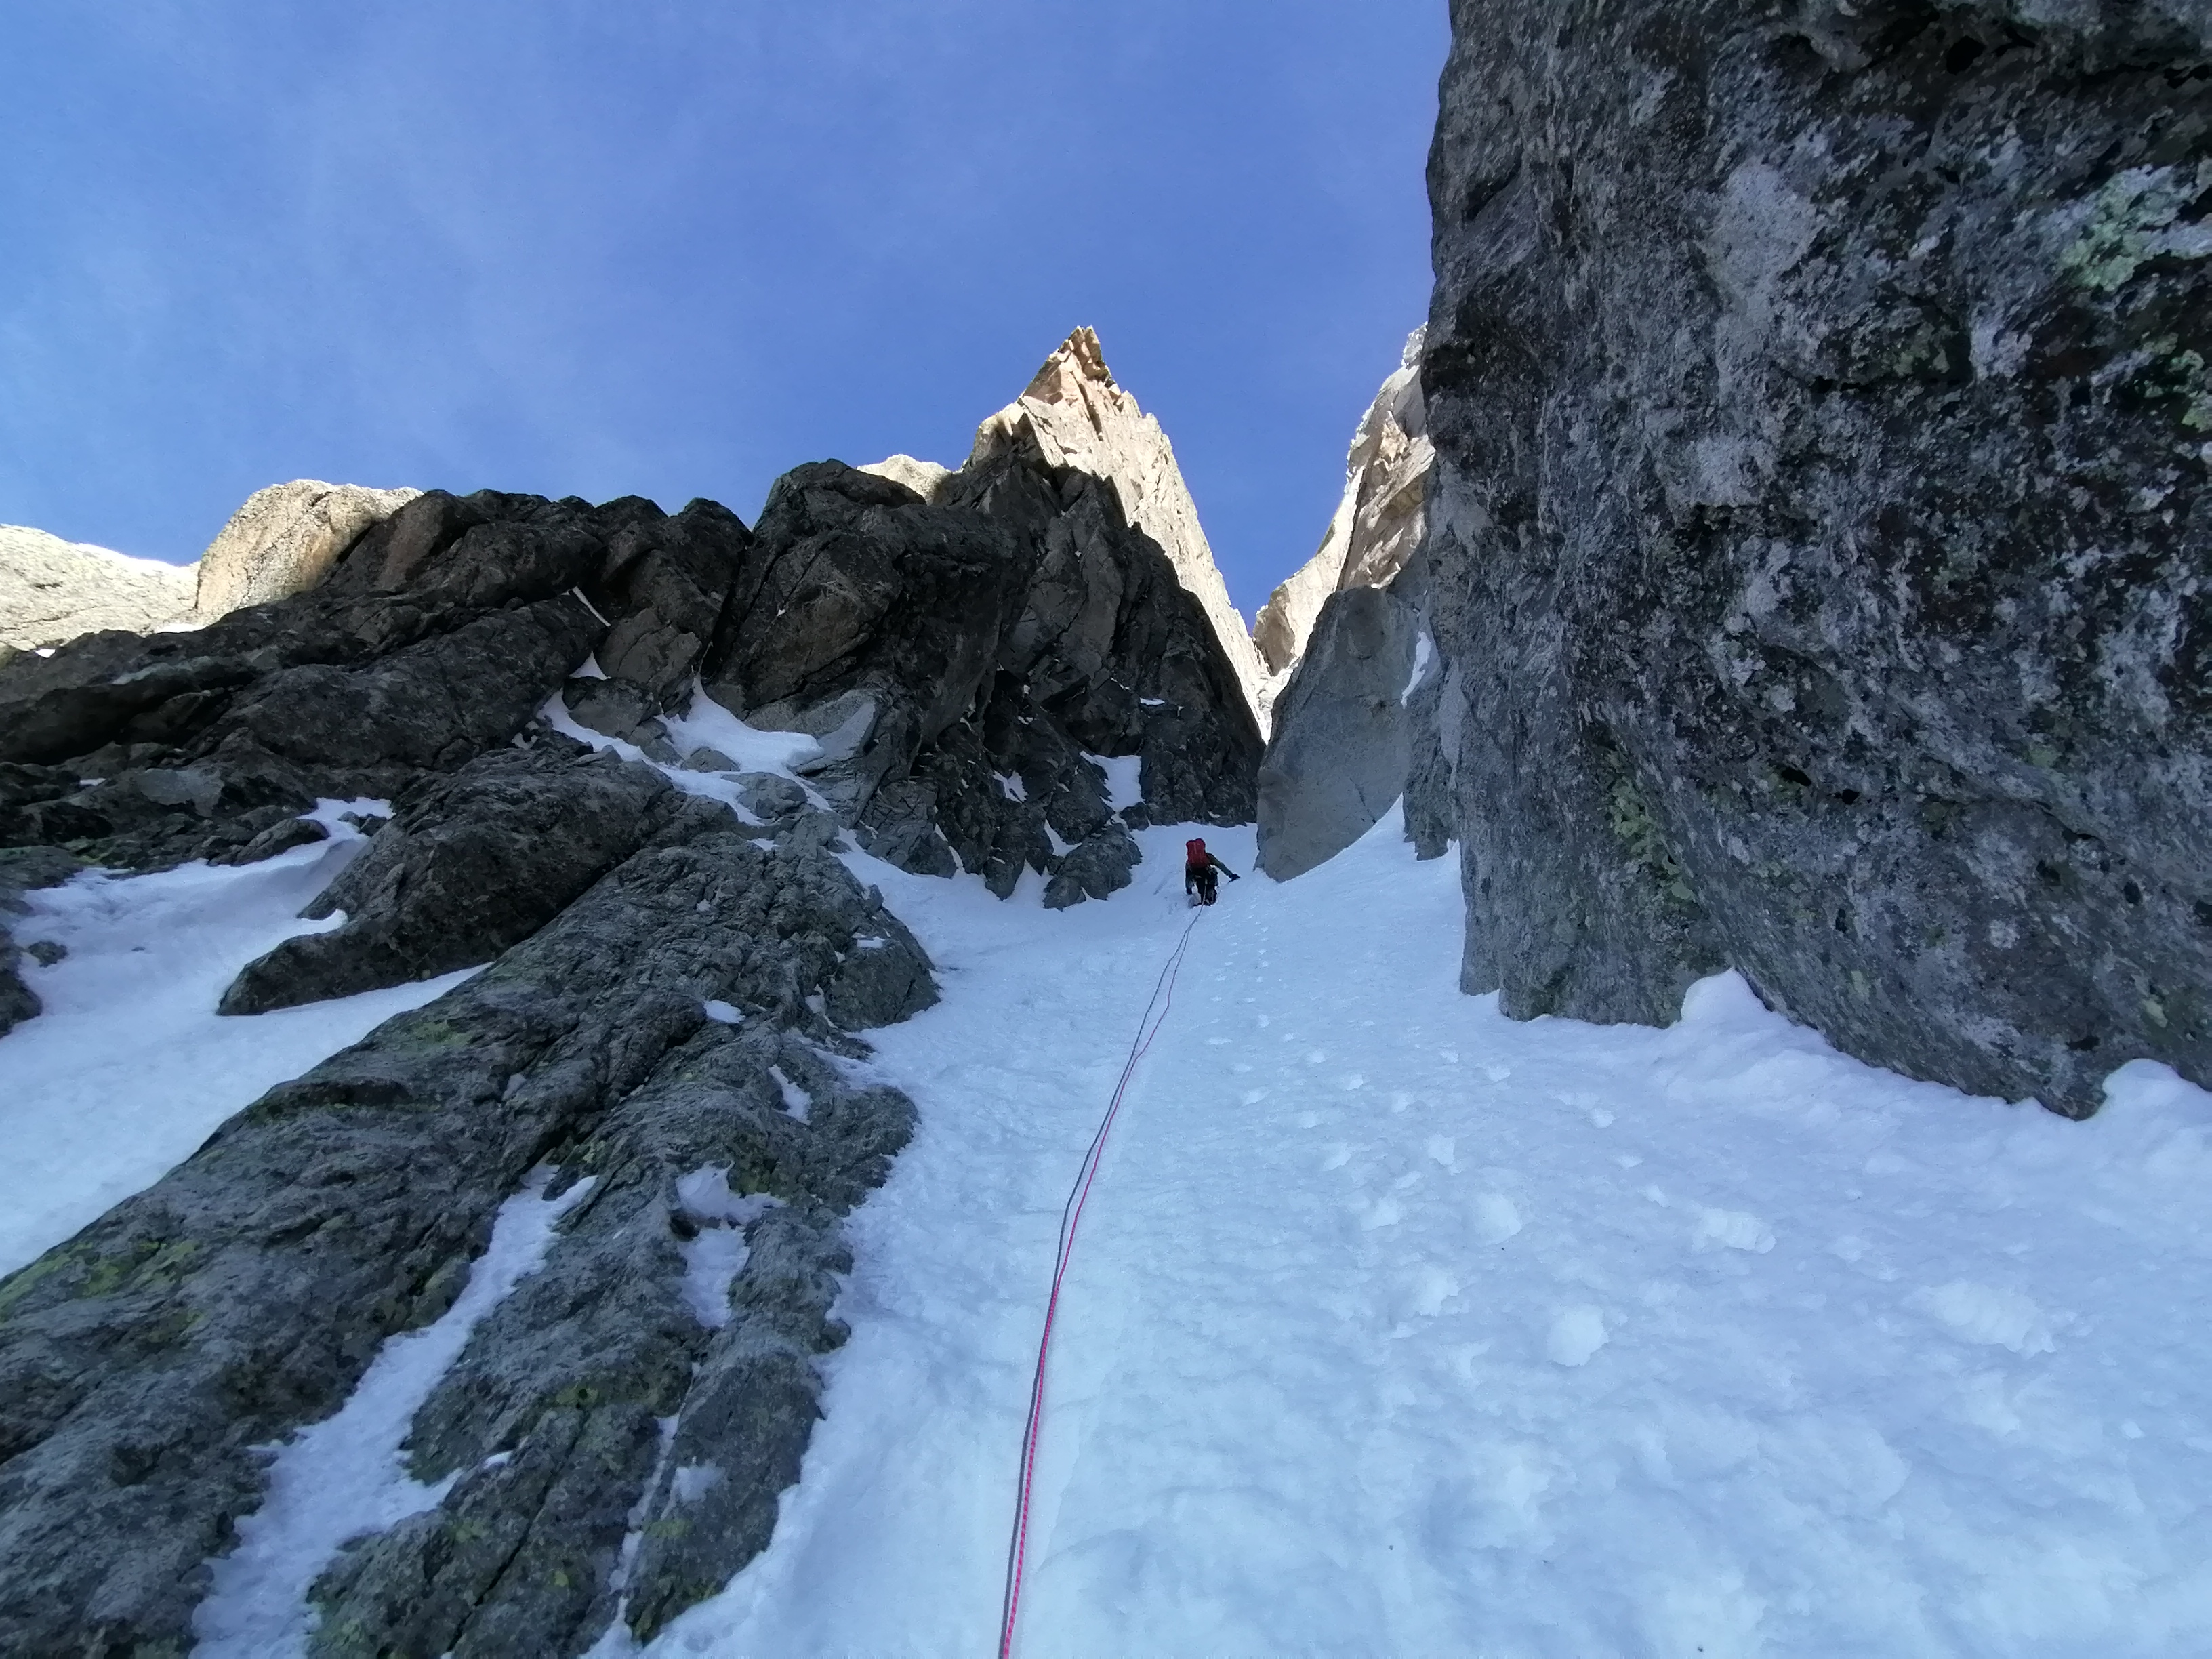 Snow couloir in the middle part